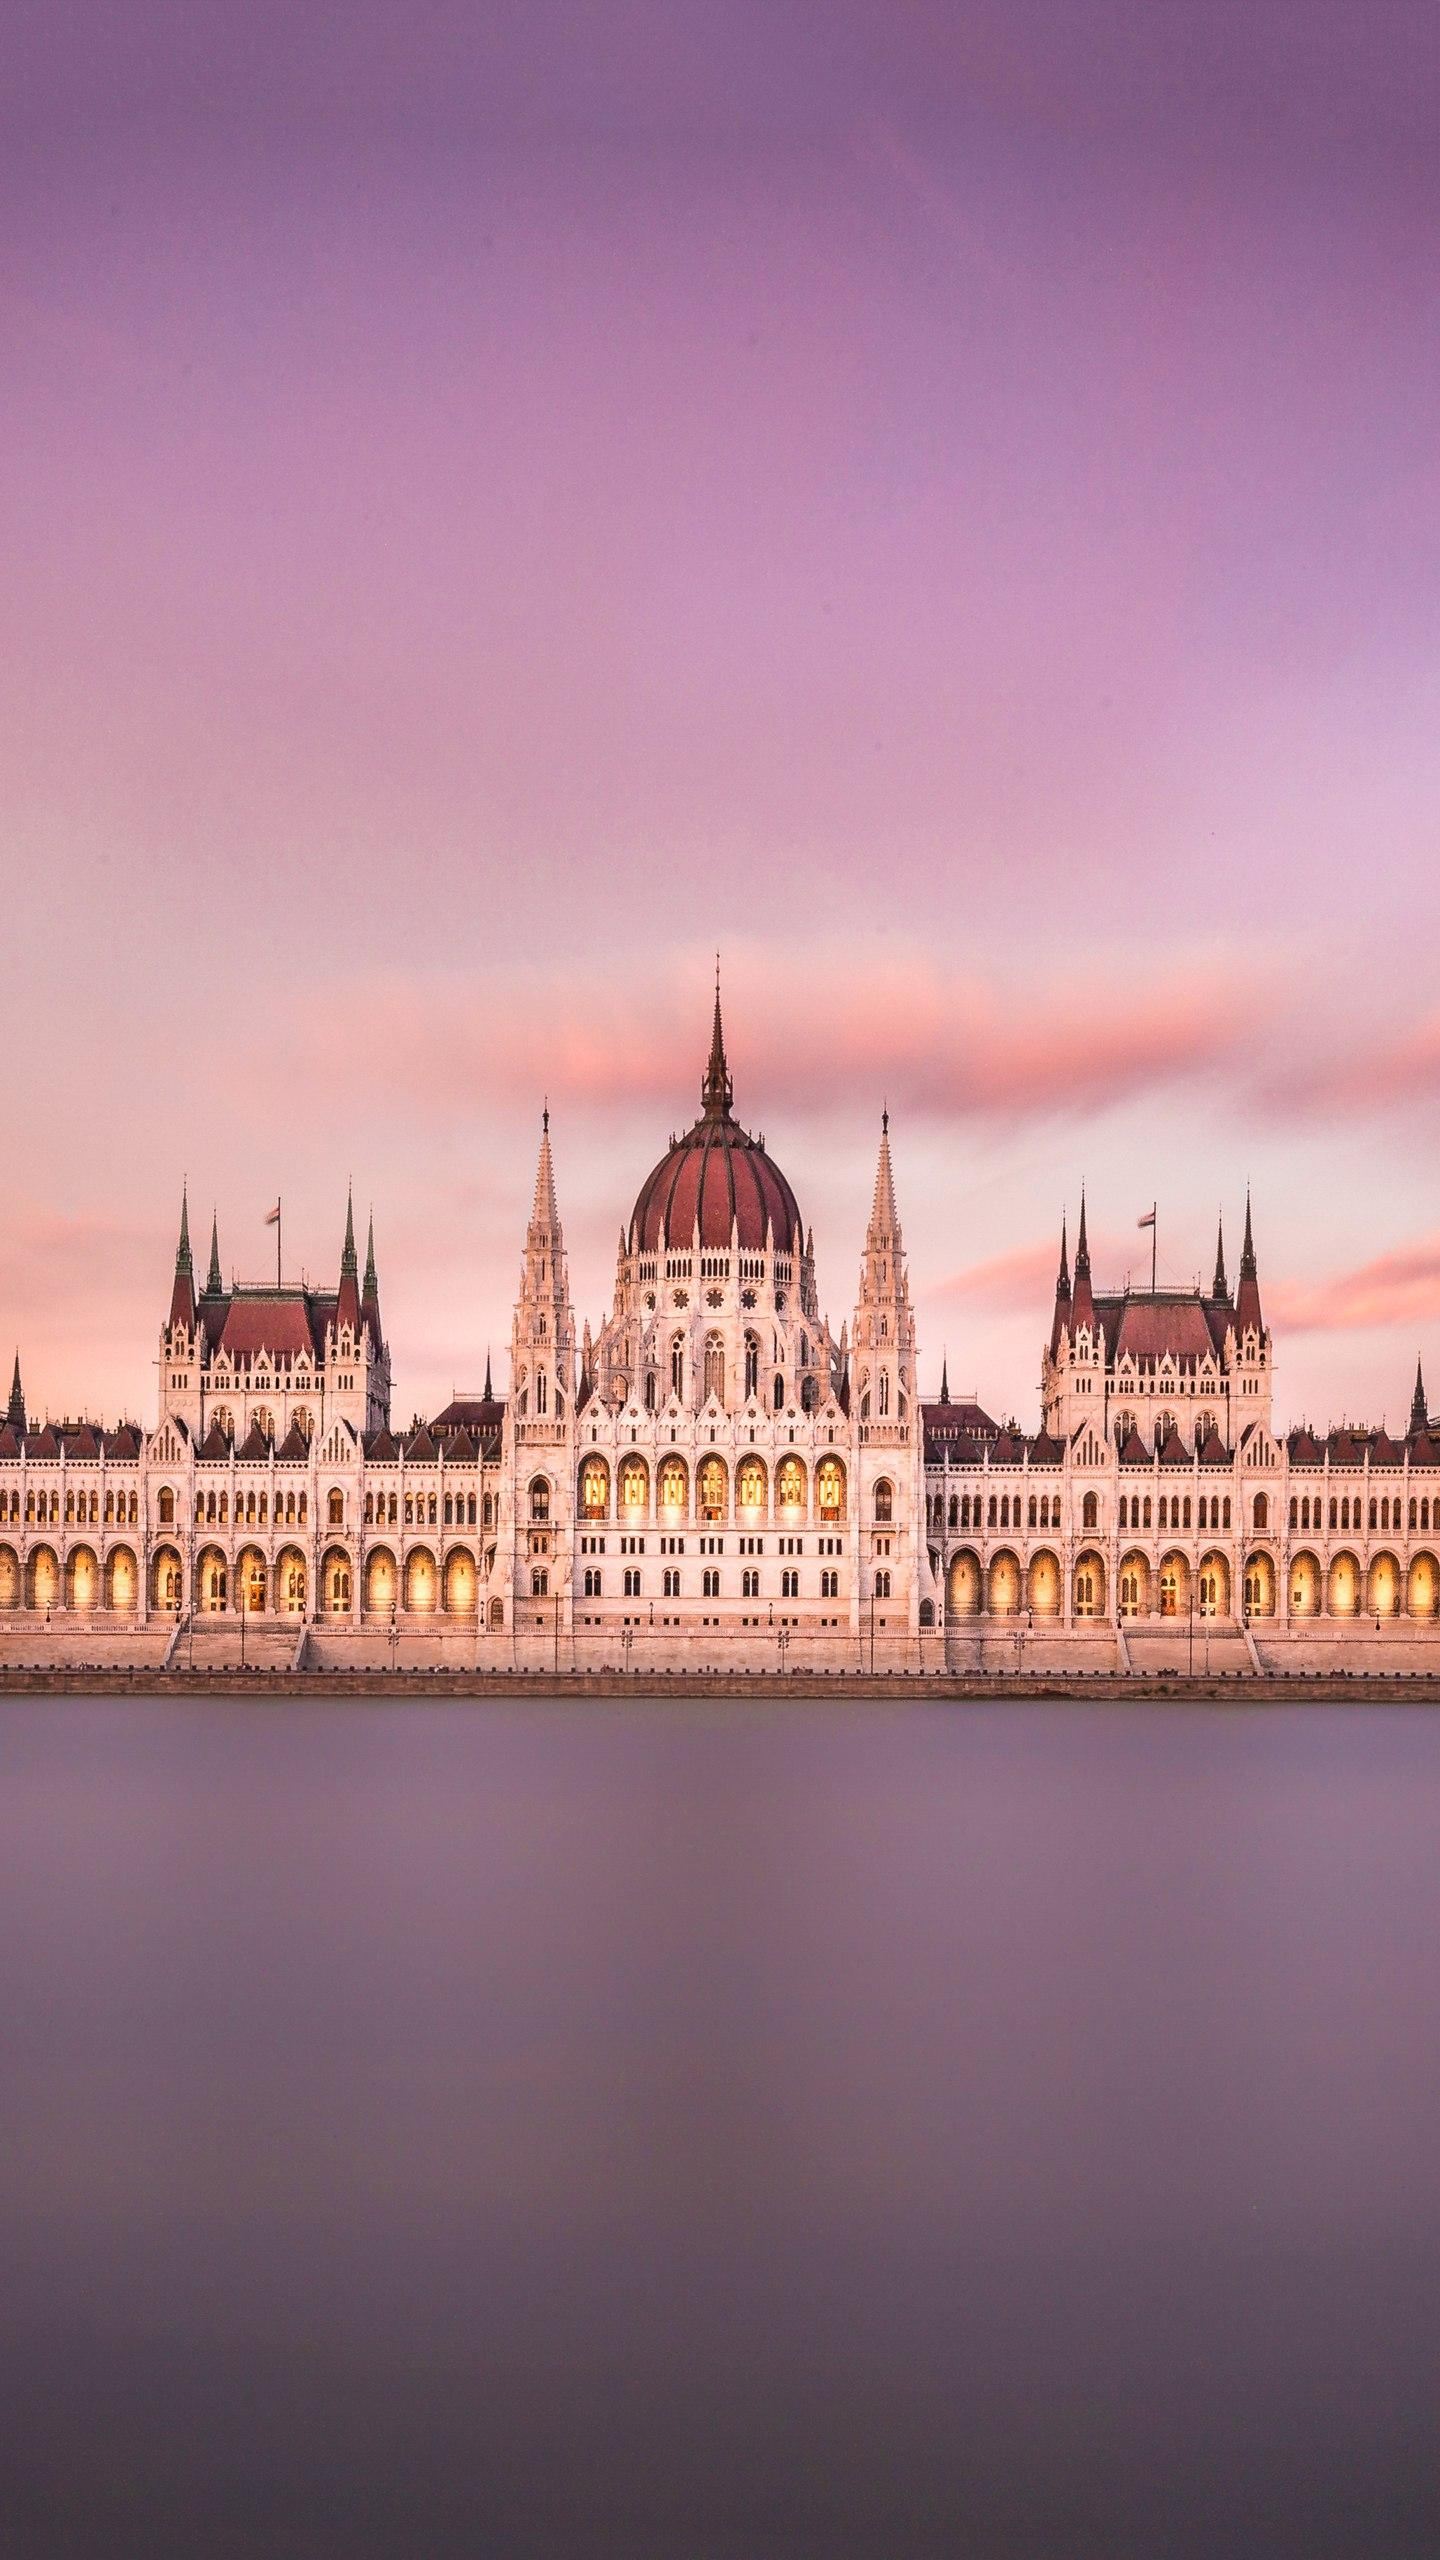 The Hungarian Parliament Building. Facing the Danube, the architectural style mimics the London Parliament Building and is one of the landmarks of Budapest, the capital of Hungary.